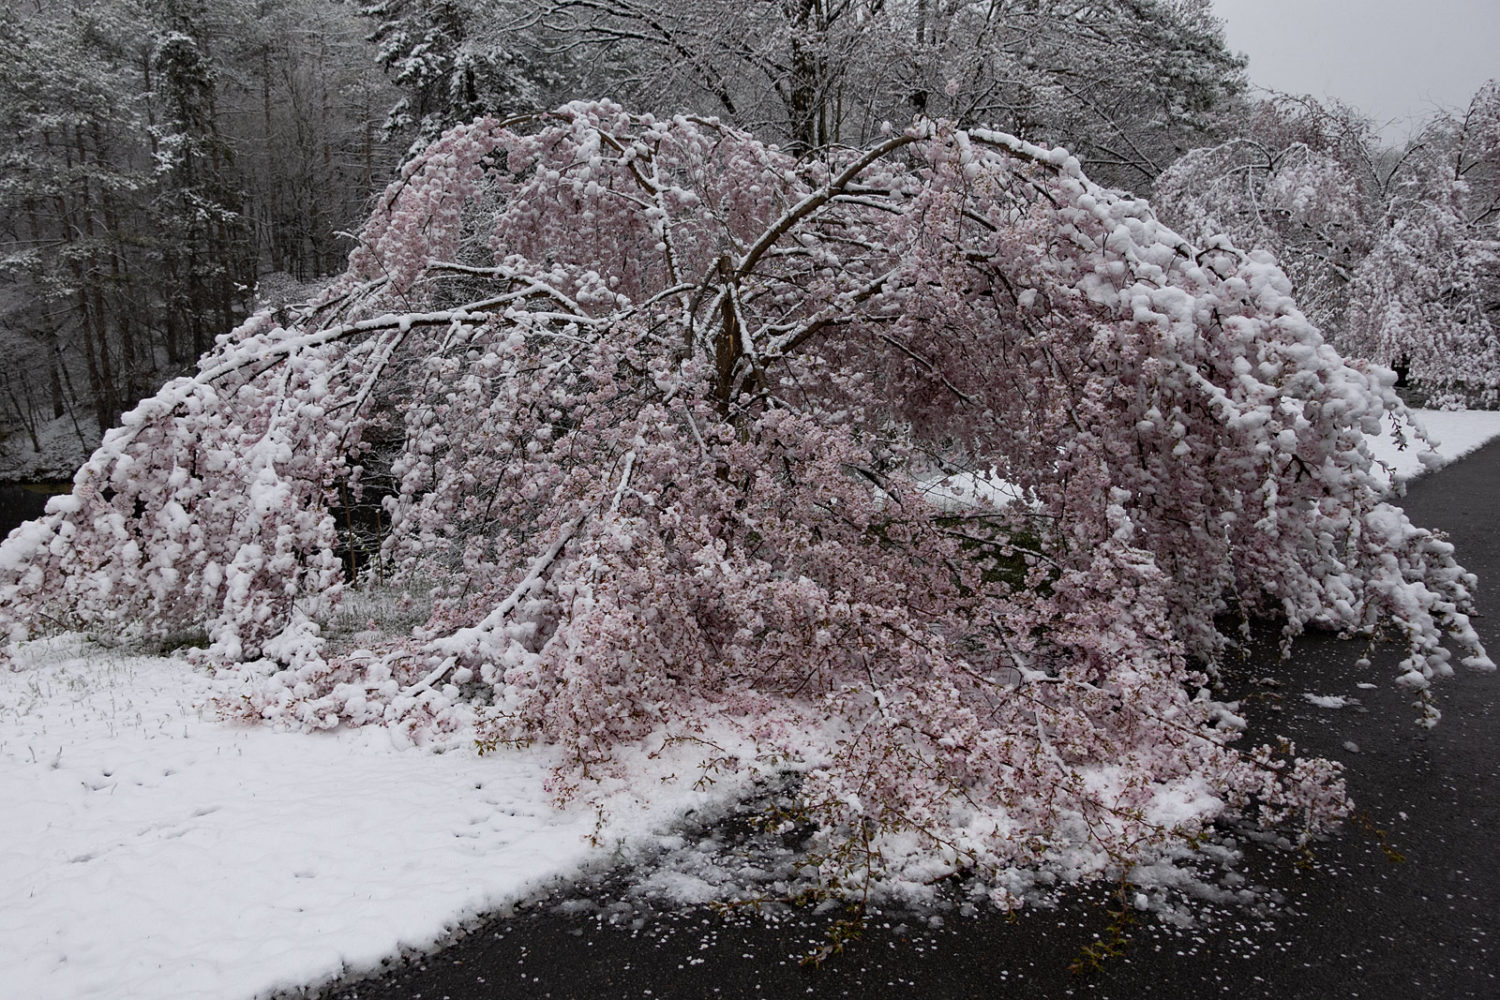 Cherry trees along Log Cabin Road under April 21st snow